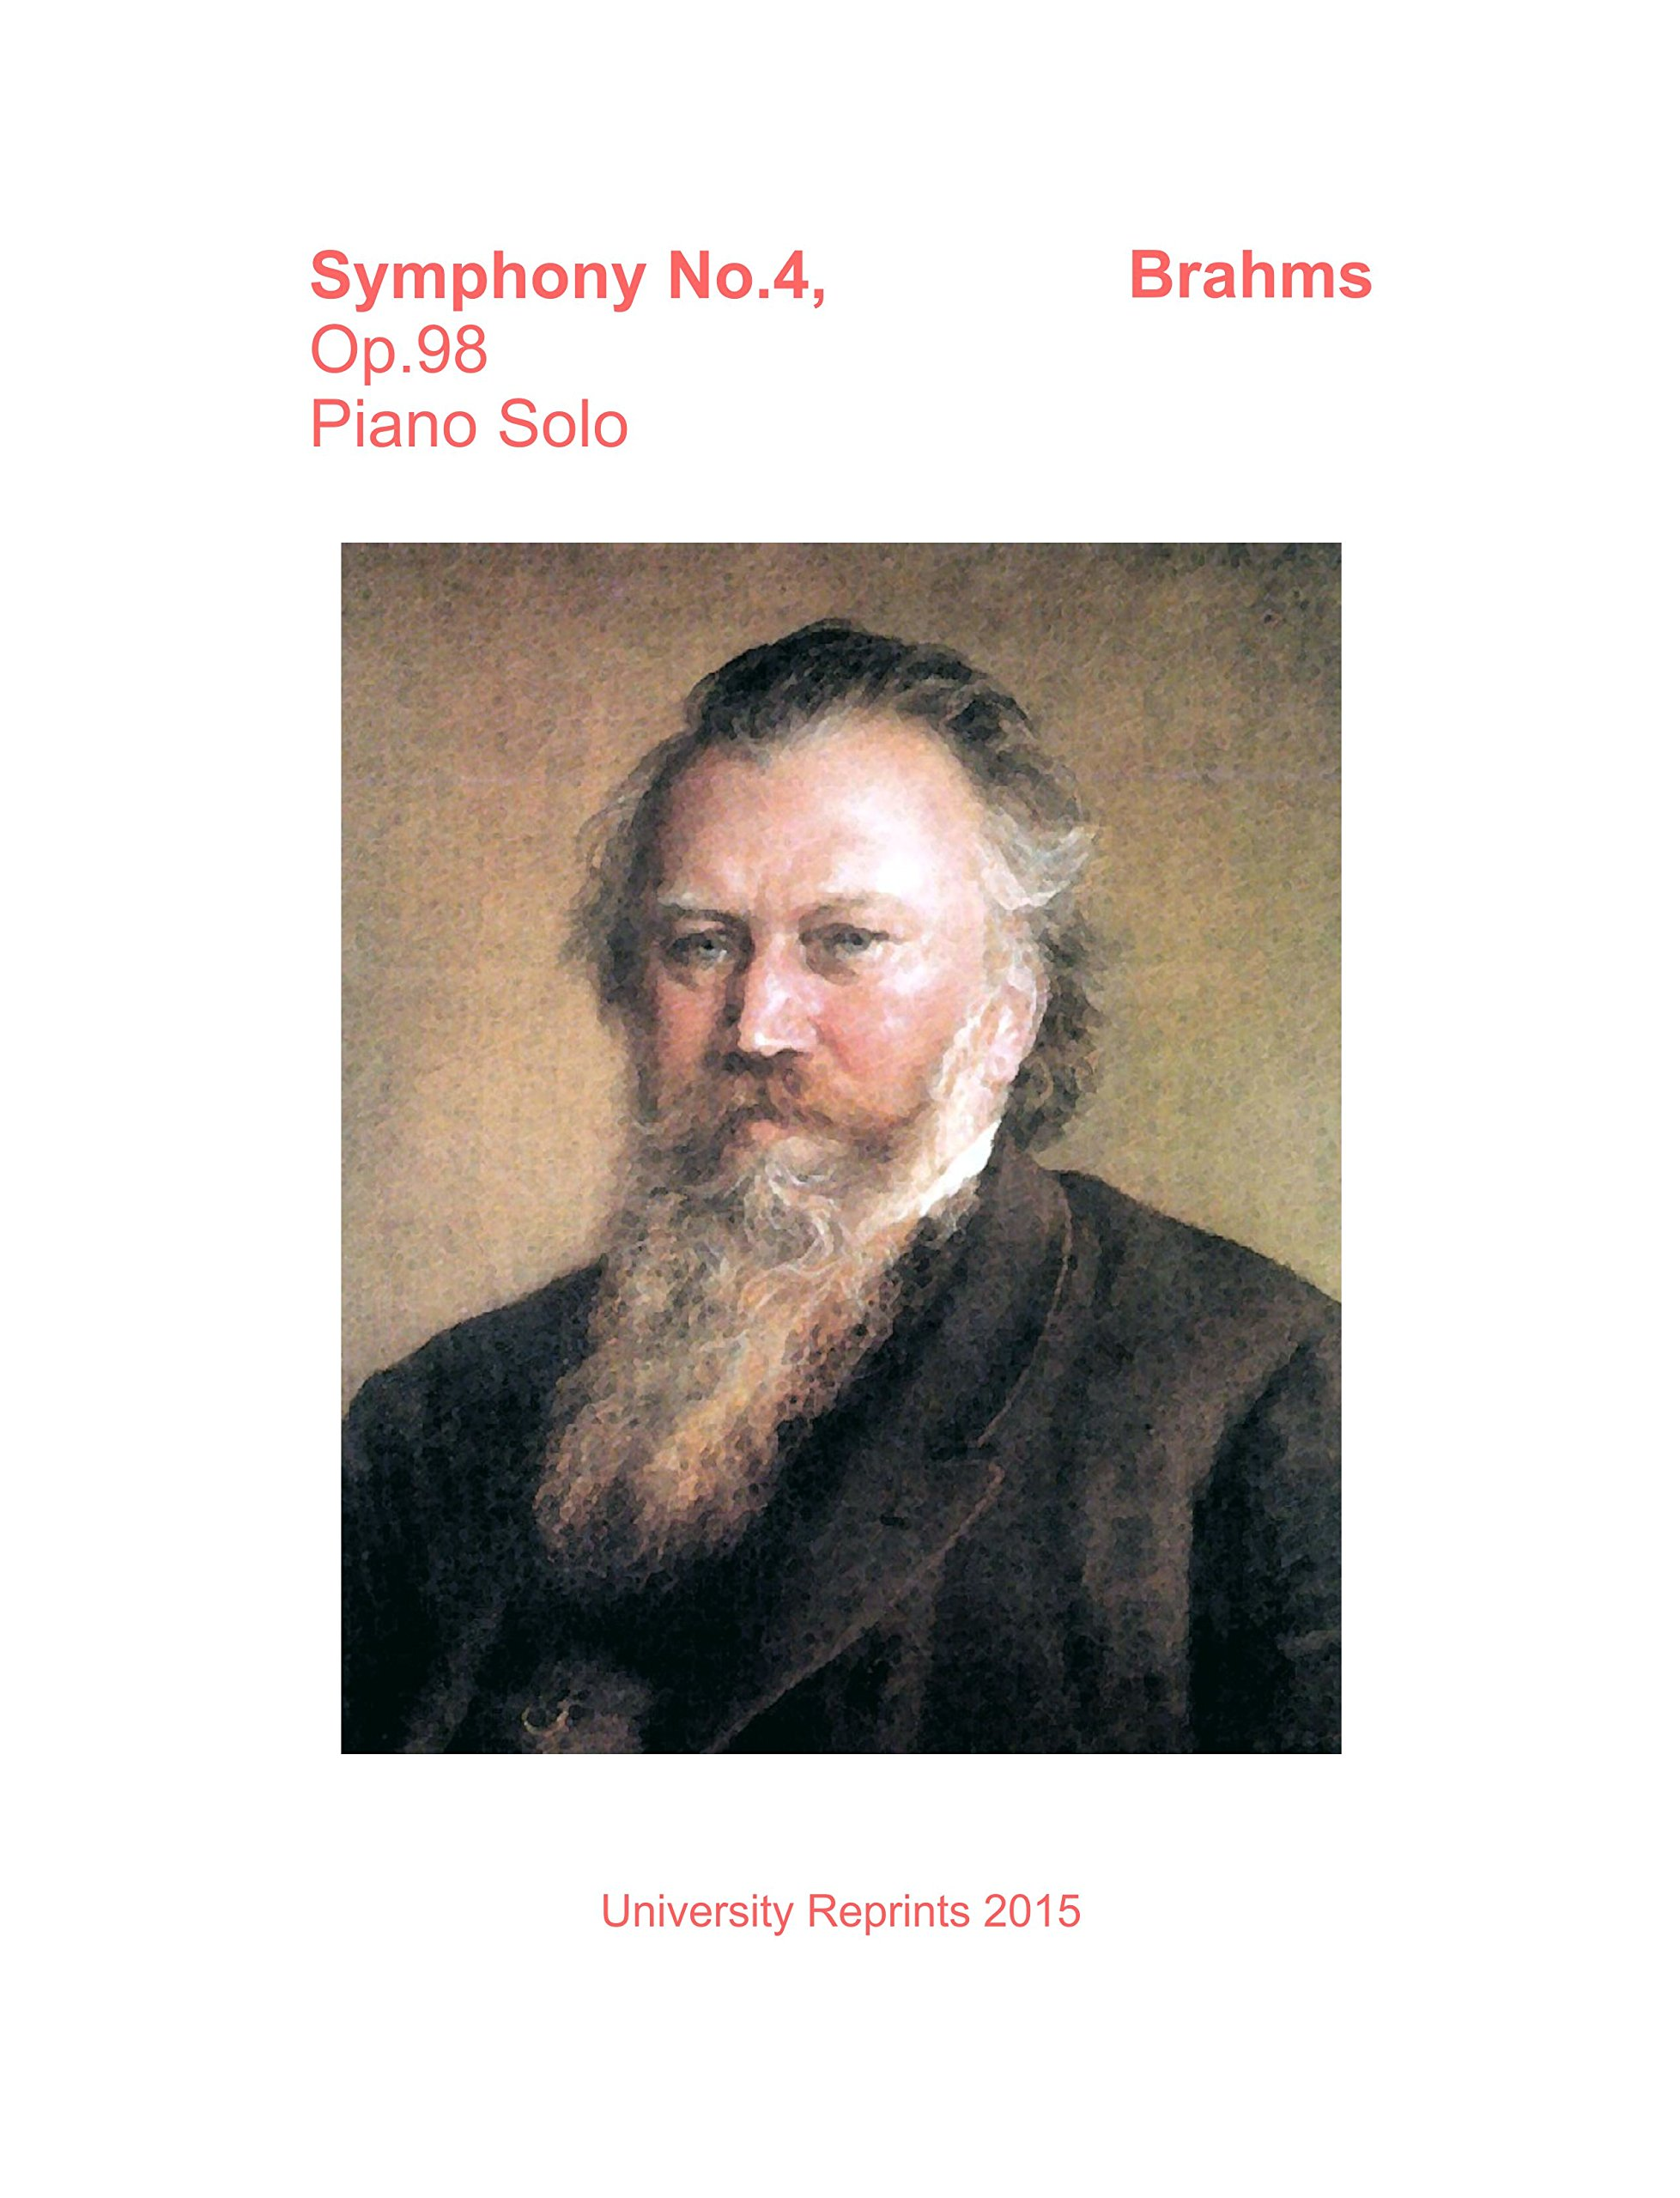 Symphony No.4, Op.98 by Johannes Brahms. Piano Solo. [Student Loose Leaf Facsimile Edition. Re-Imaged from Original for Greater Clarity. 2015] PDF